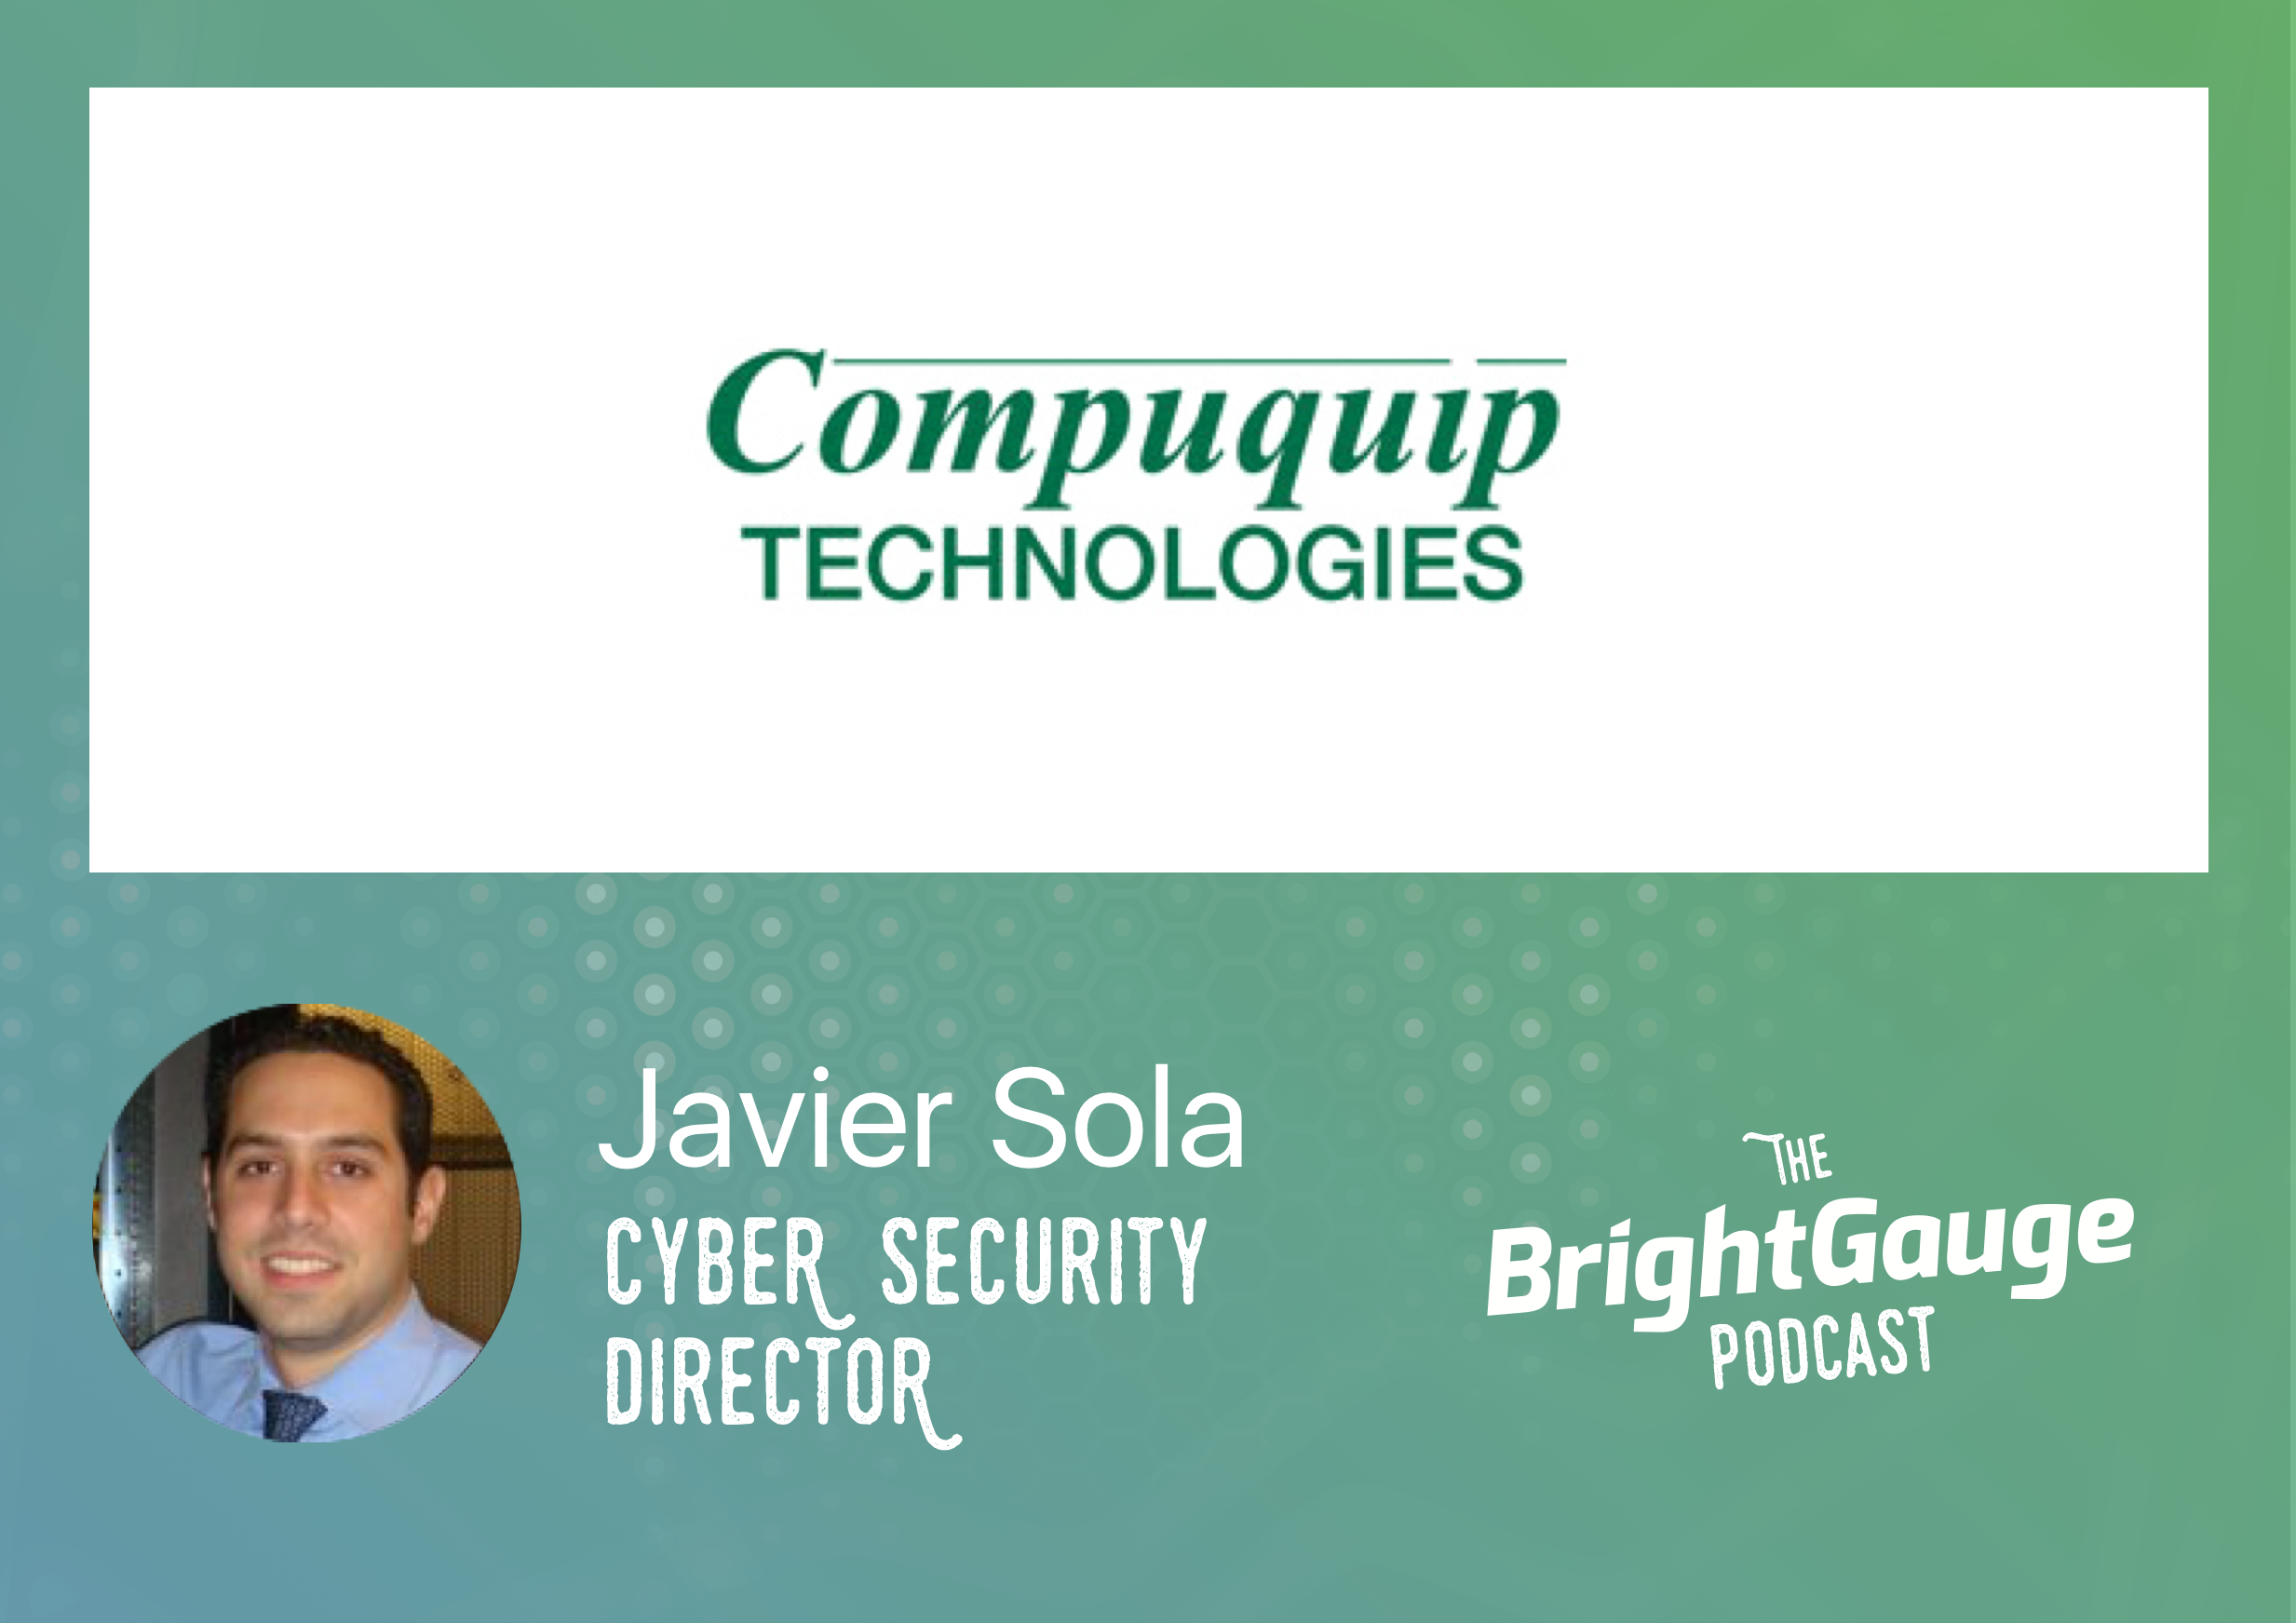 [Podcast] Episode 32 with Javier Sola of Compuquip